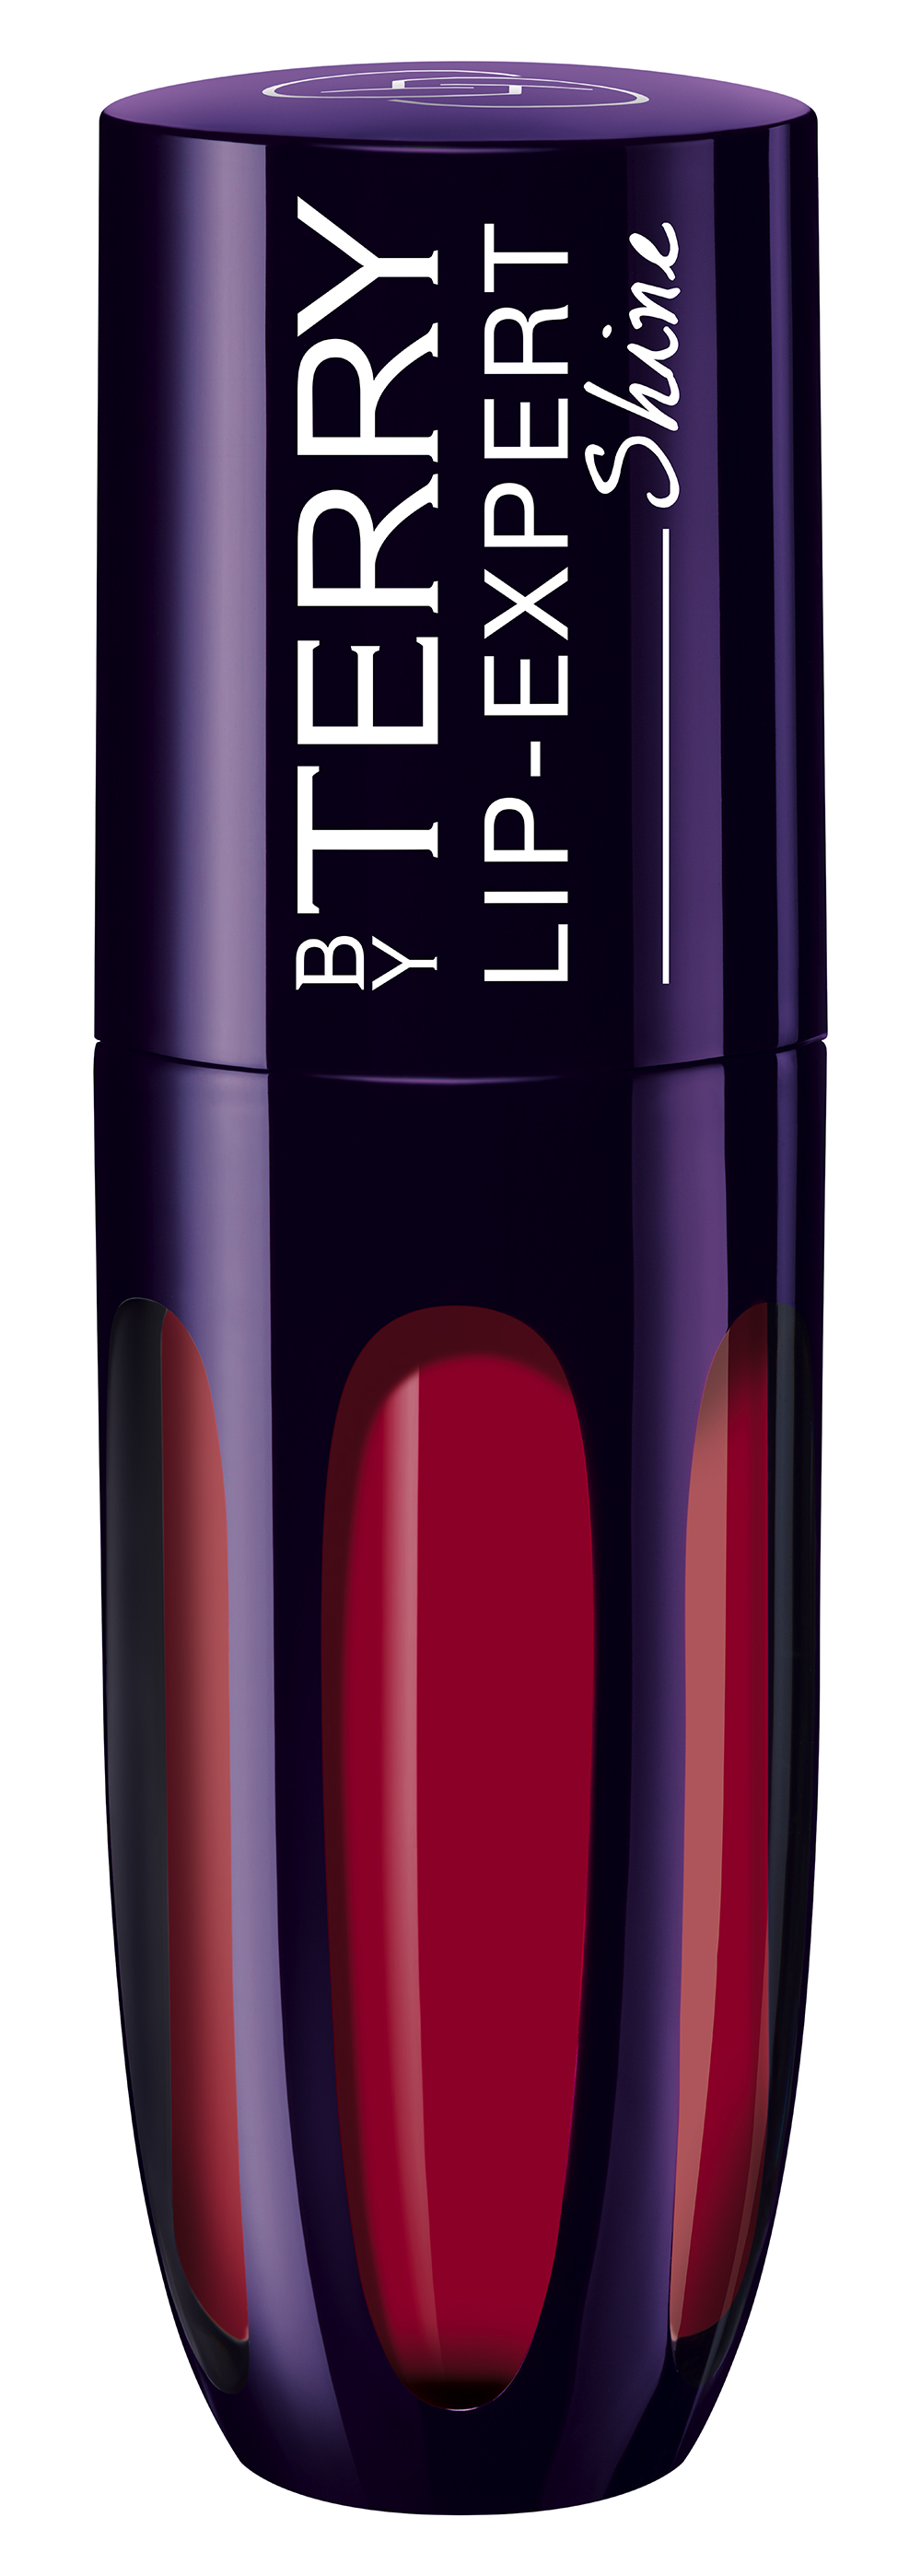 By Terry Lip Expert Shine in Fire Nude.jpg